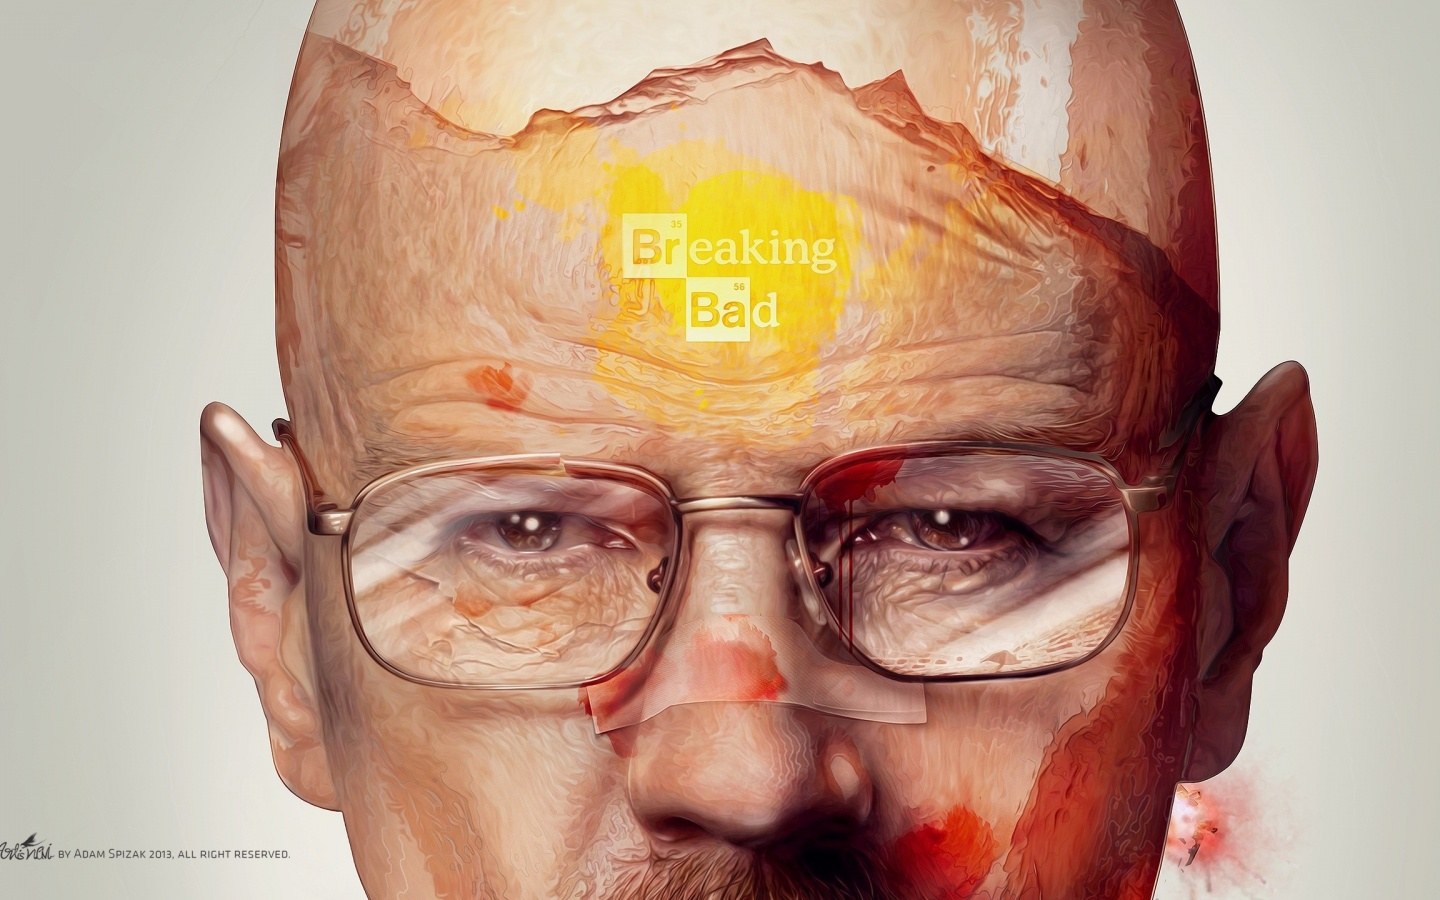 1440x900 Breaking Bad Artwork desktop PC and Mac wallpaper